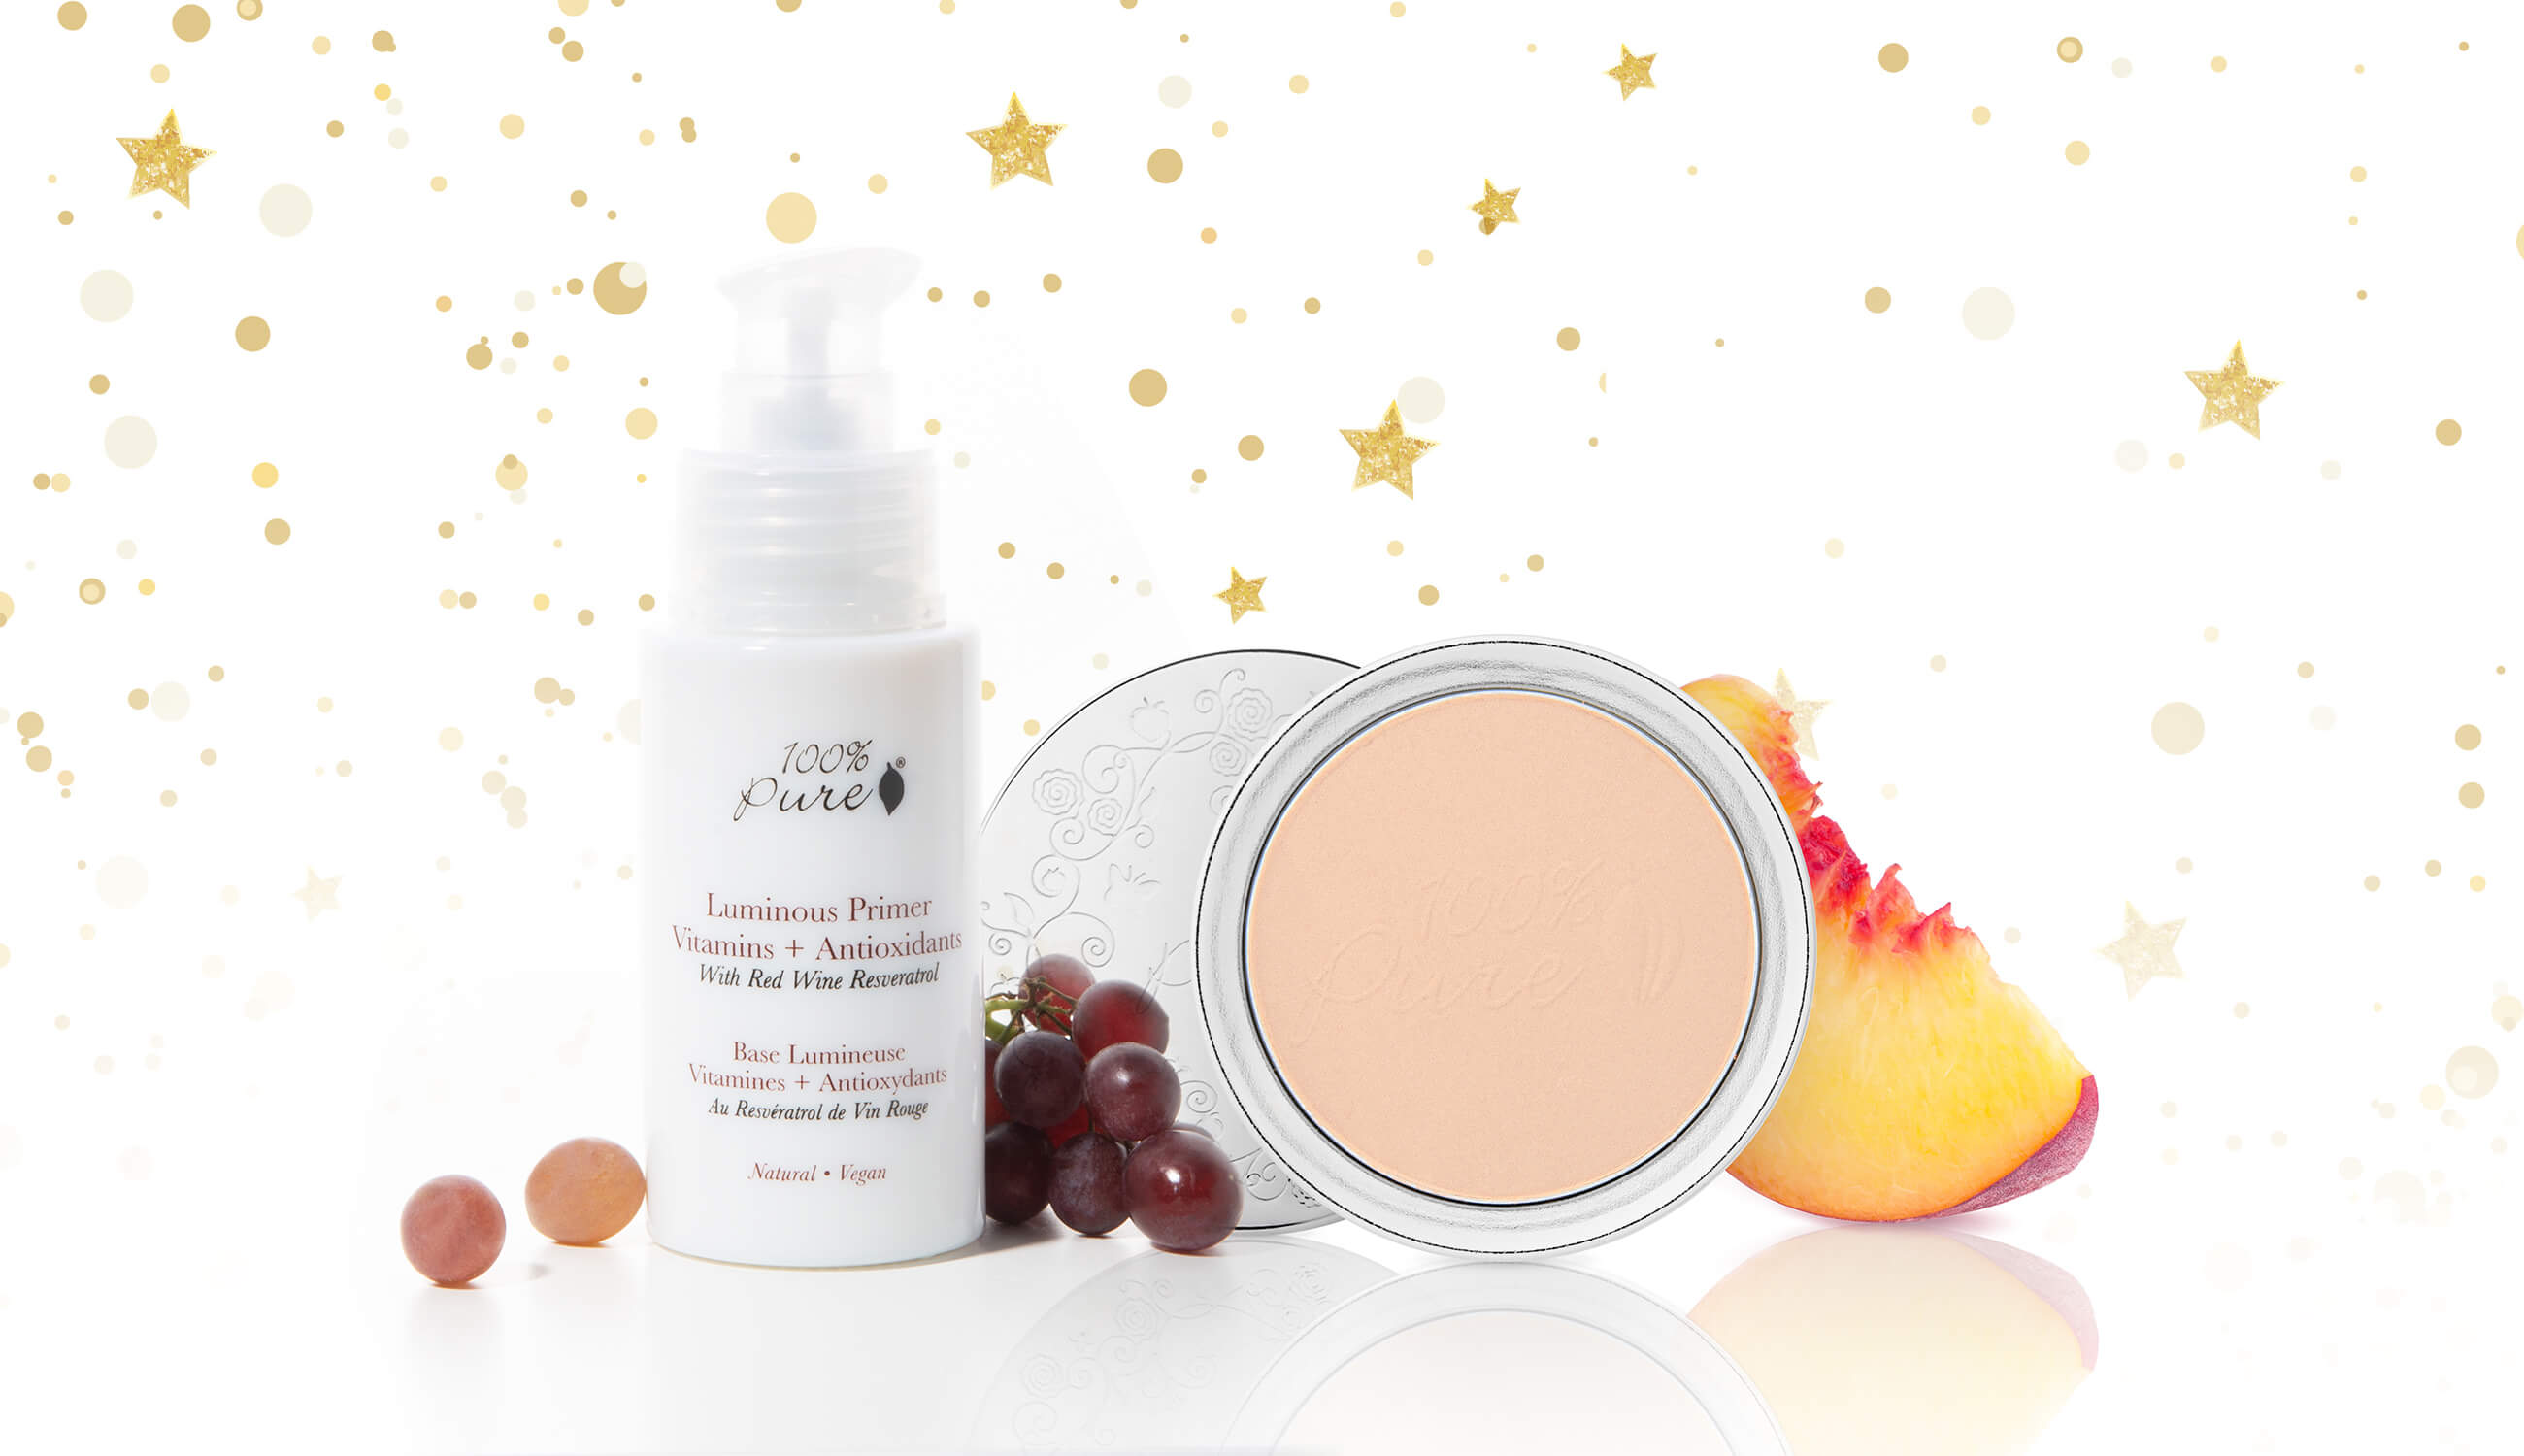 Luminous Primer and Powder Foundation